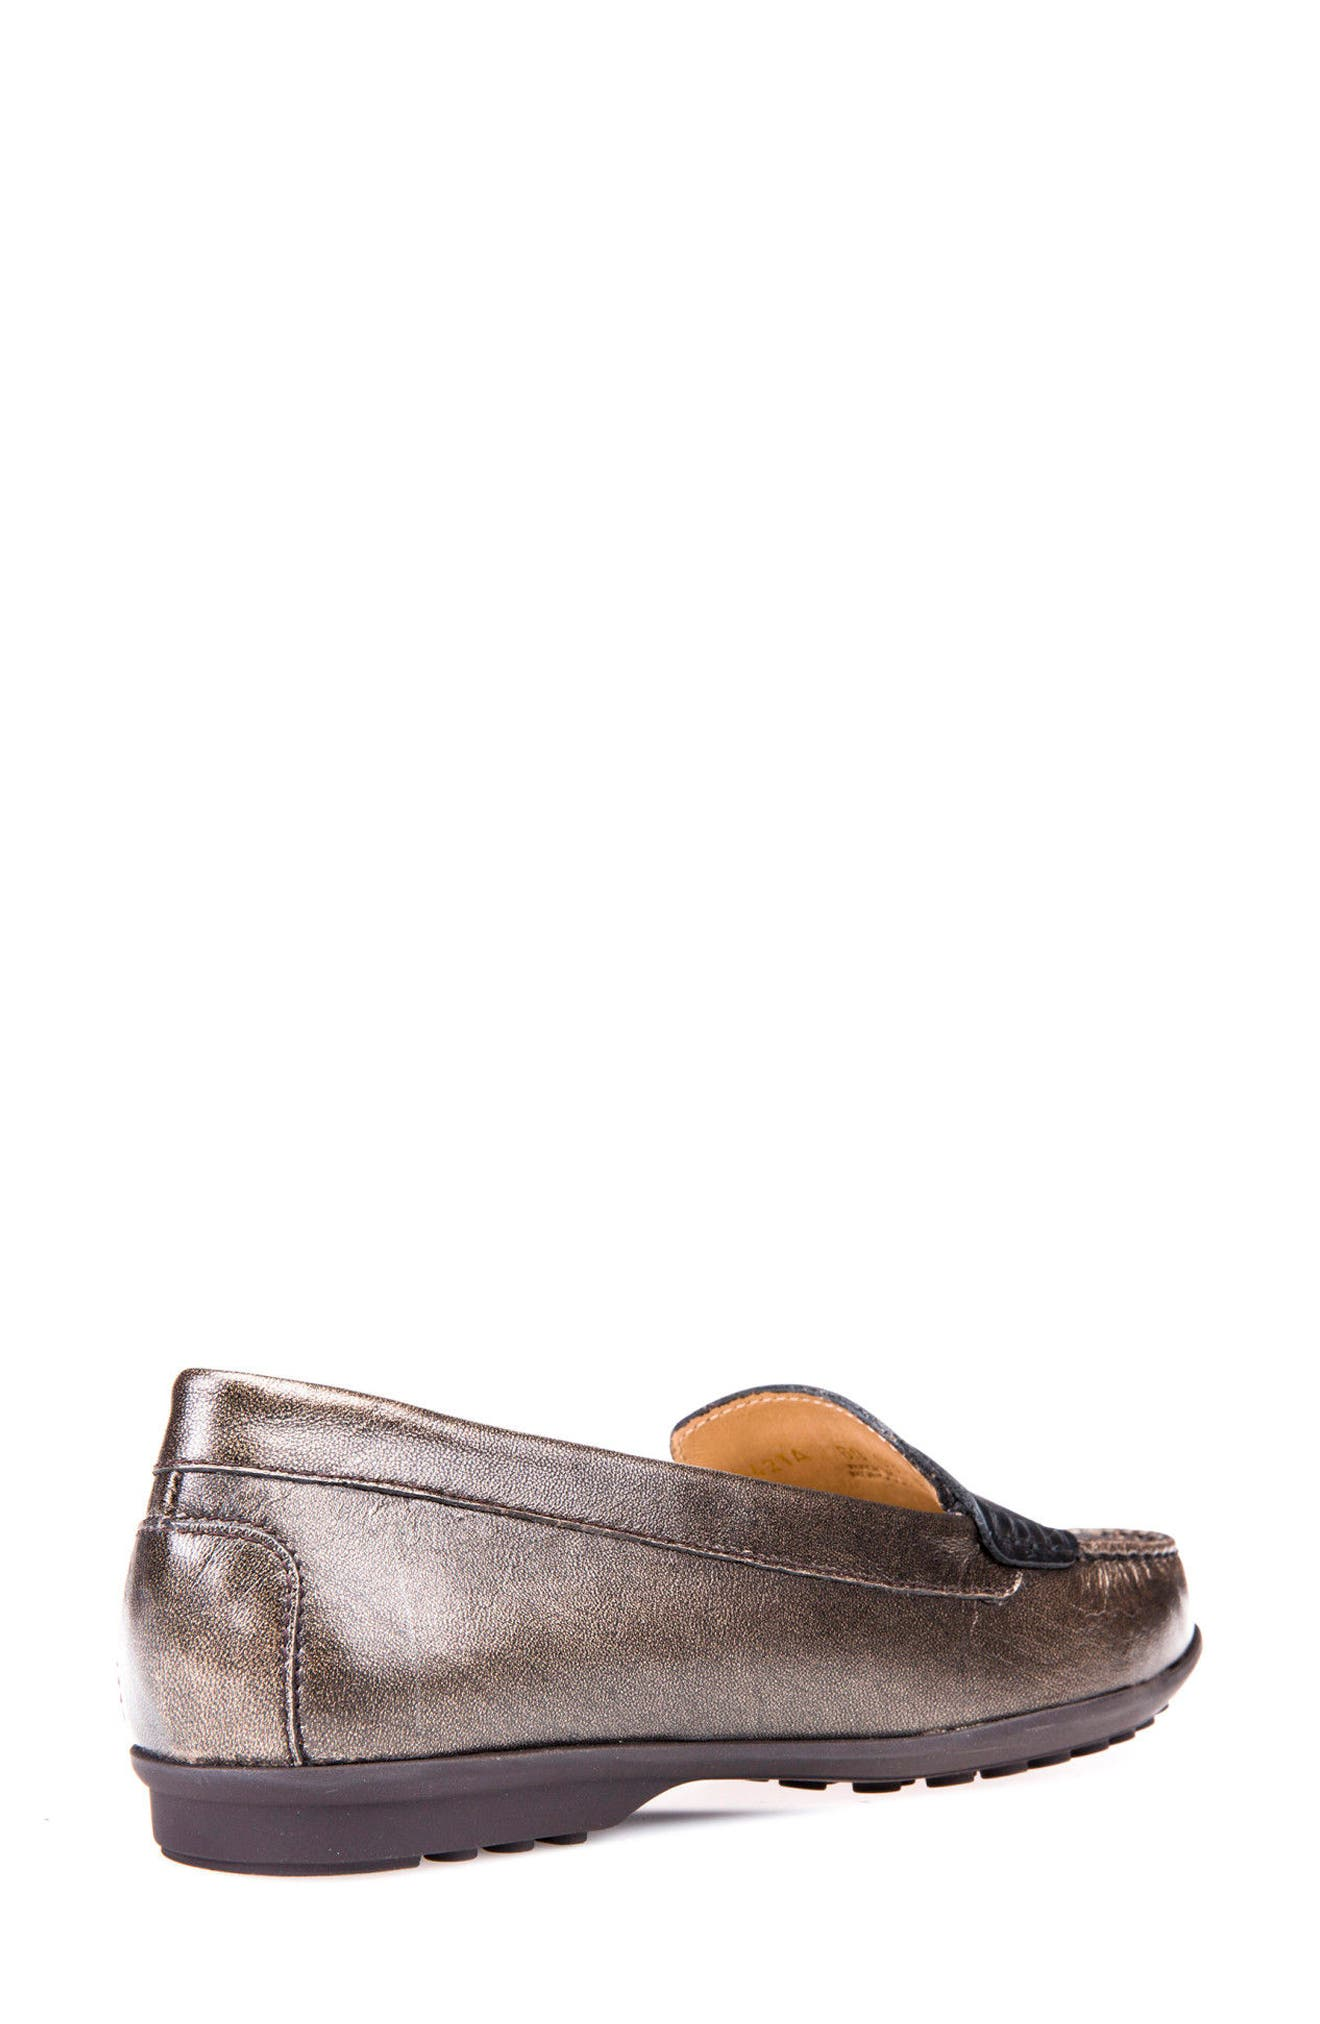 Alternate Image 3  - Geox Elidia 5 Penny Loafer (Women)